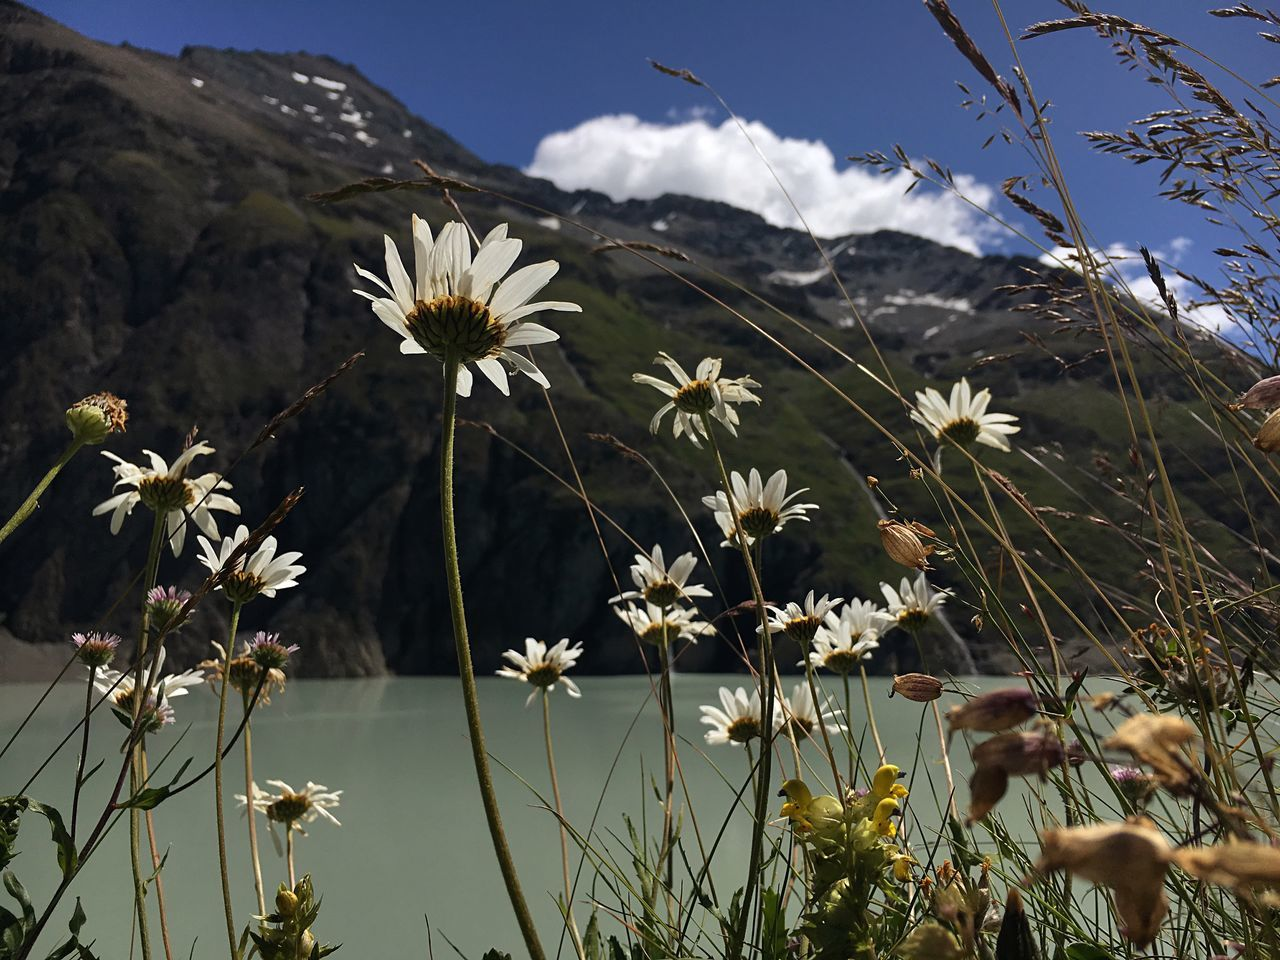 Flower Fragility Growth Plant Freshness Beauty In Nature Daisy Nature Stem Close-up Sky Mountain Switzerland Lac Des Dix High Altitude Col Des Roux 2800metrs Wildflower Petal Blooming Flower Head Cloud Cloud - Sky Water Wildflower